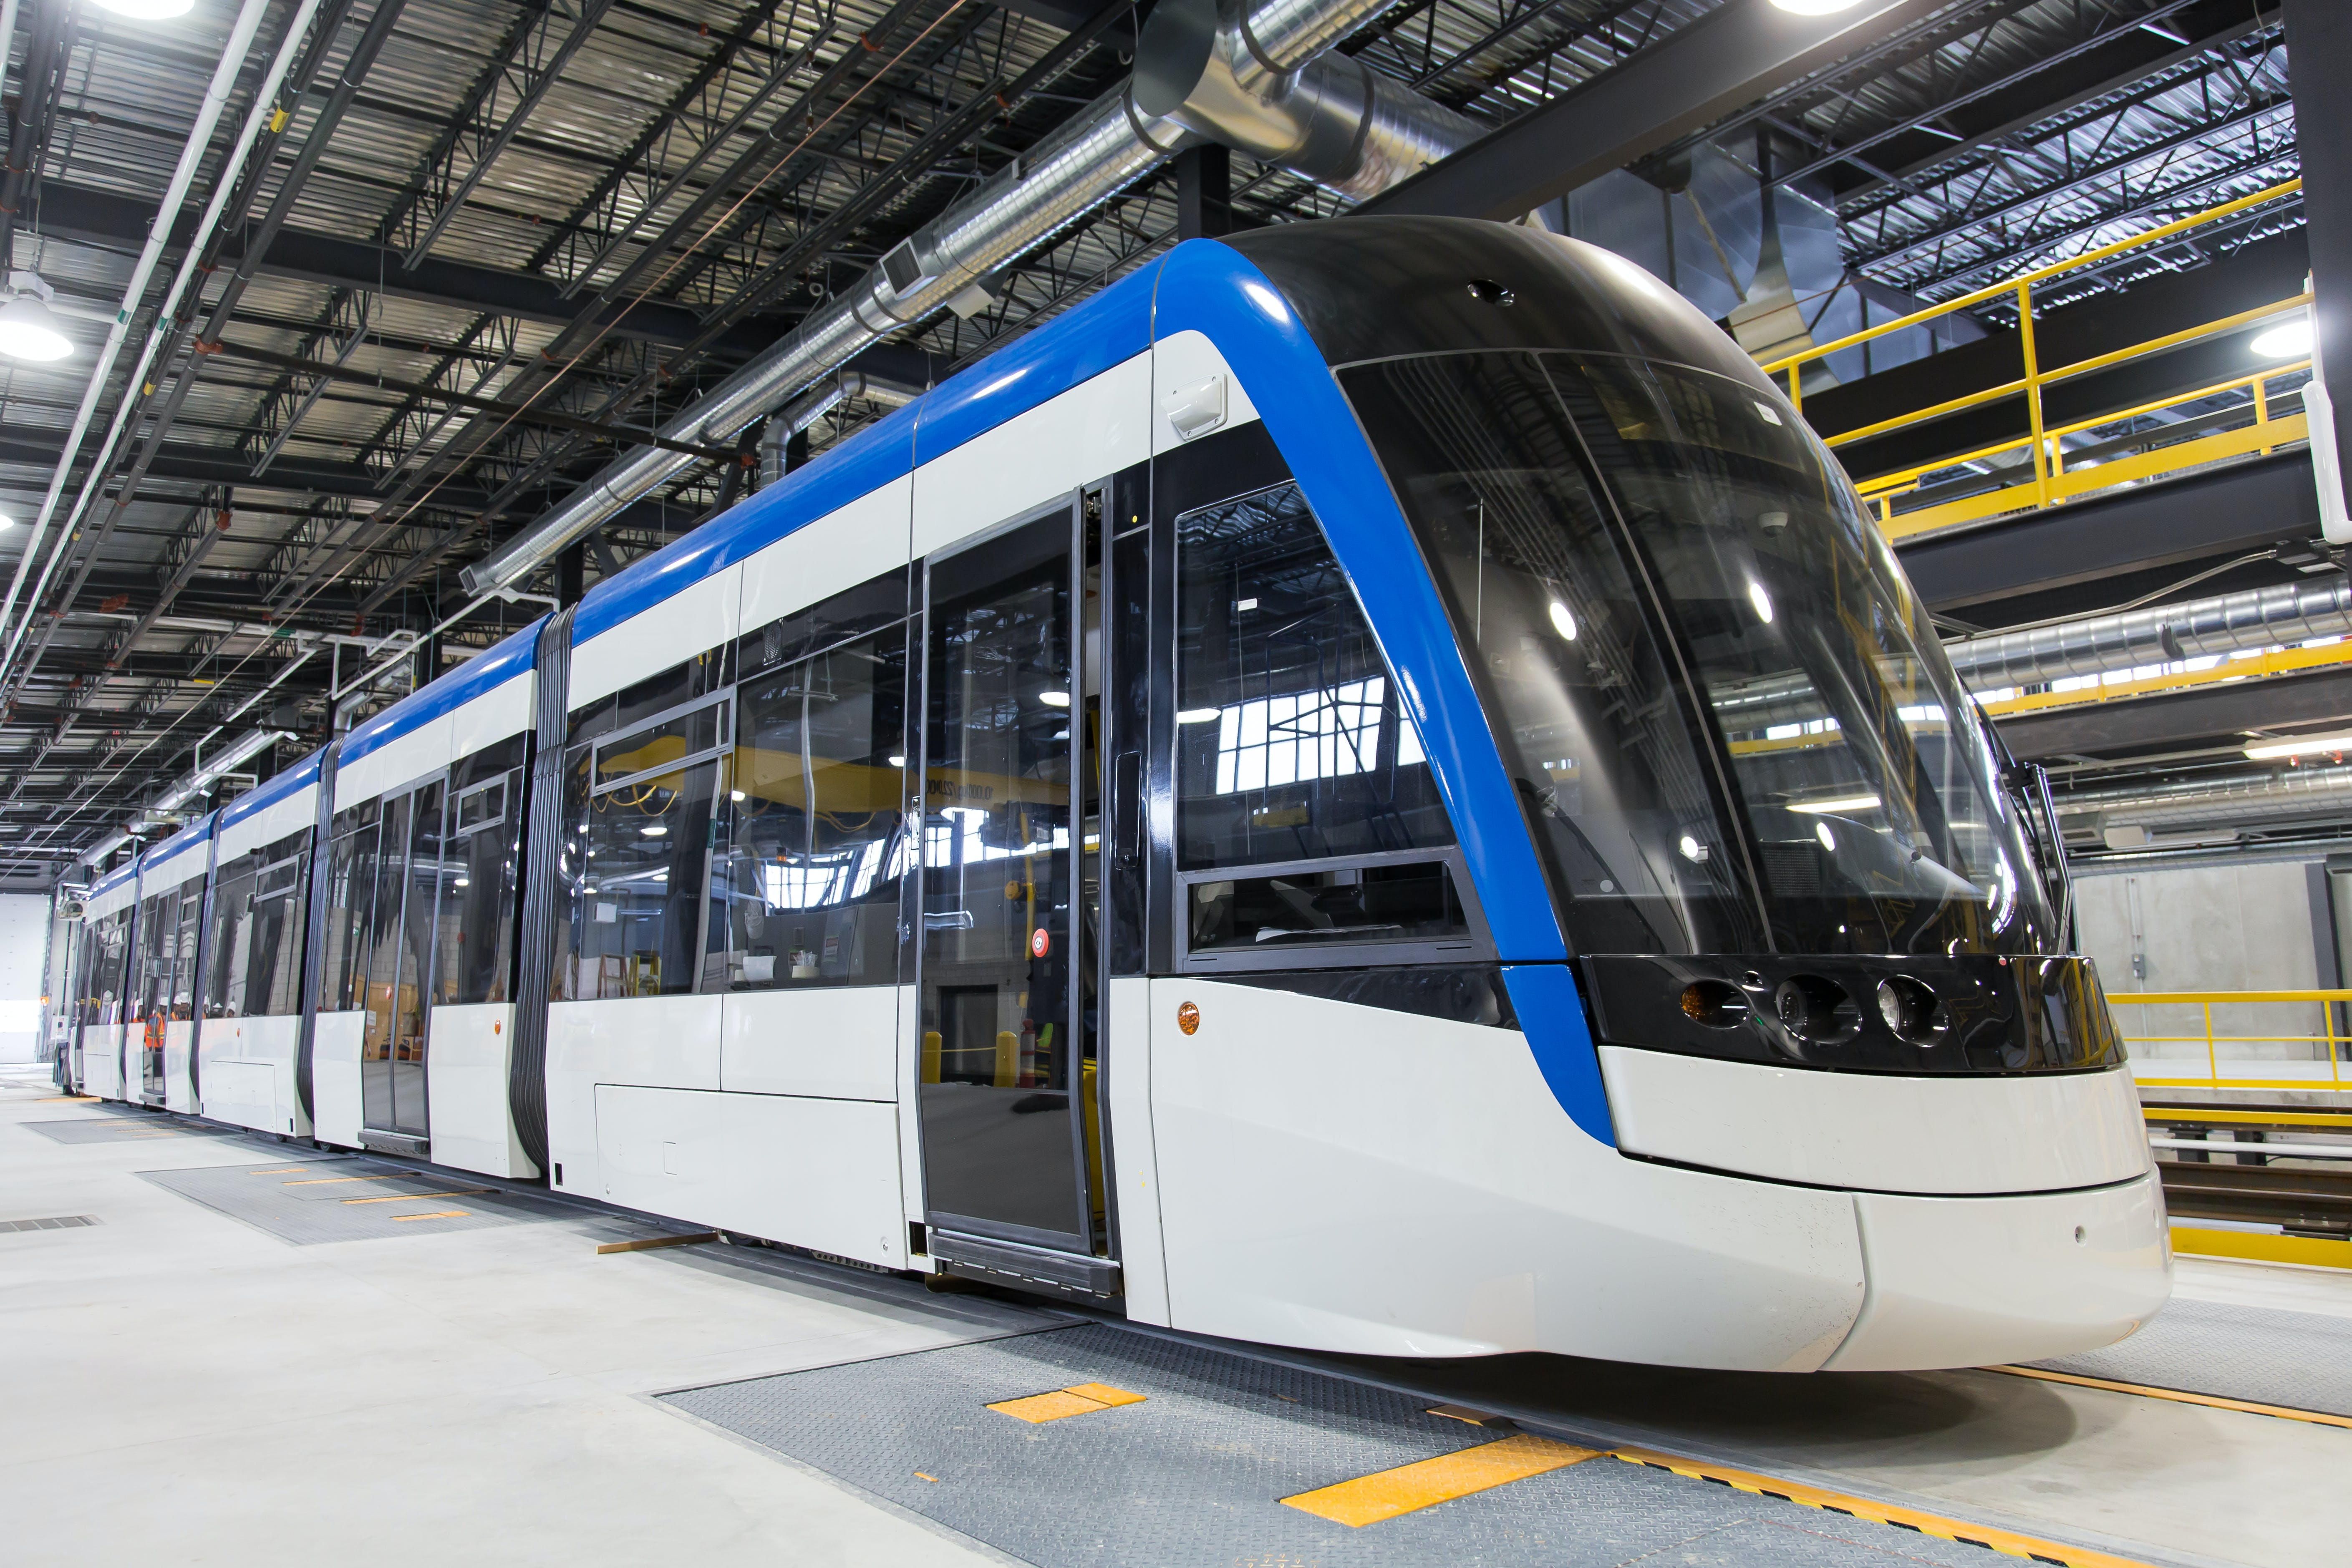 ION Light Rapid transit